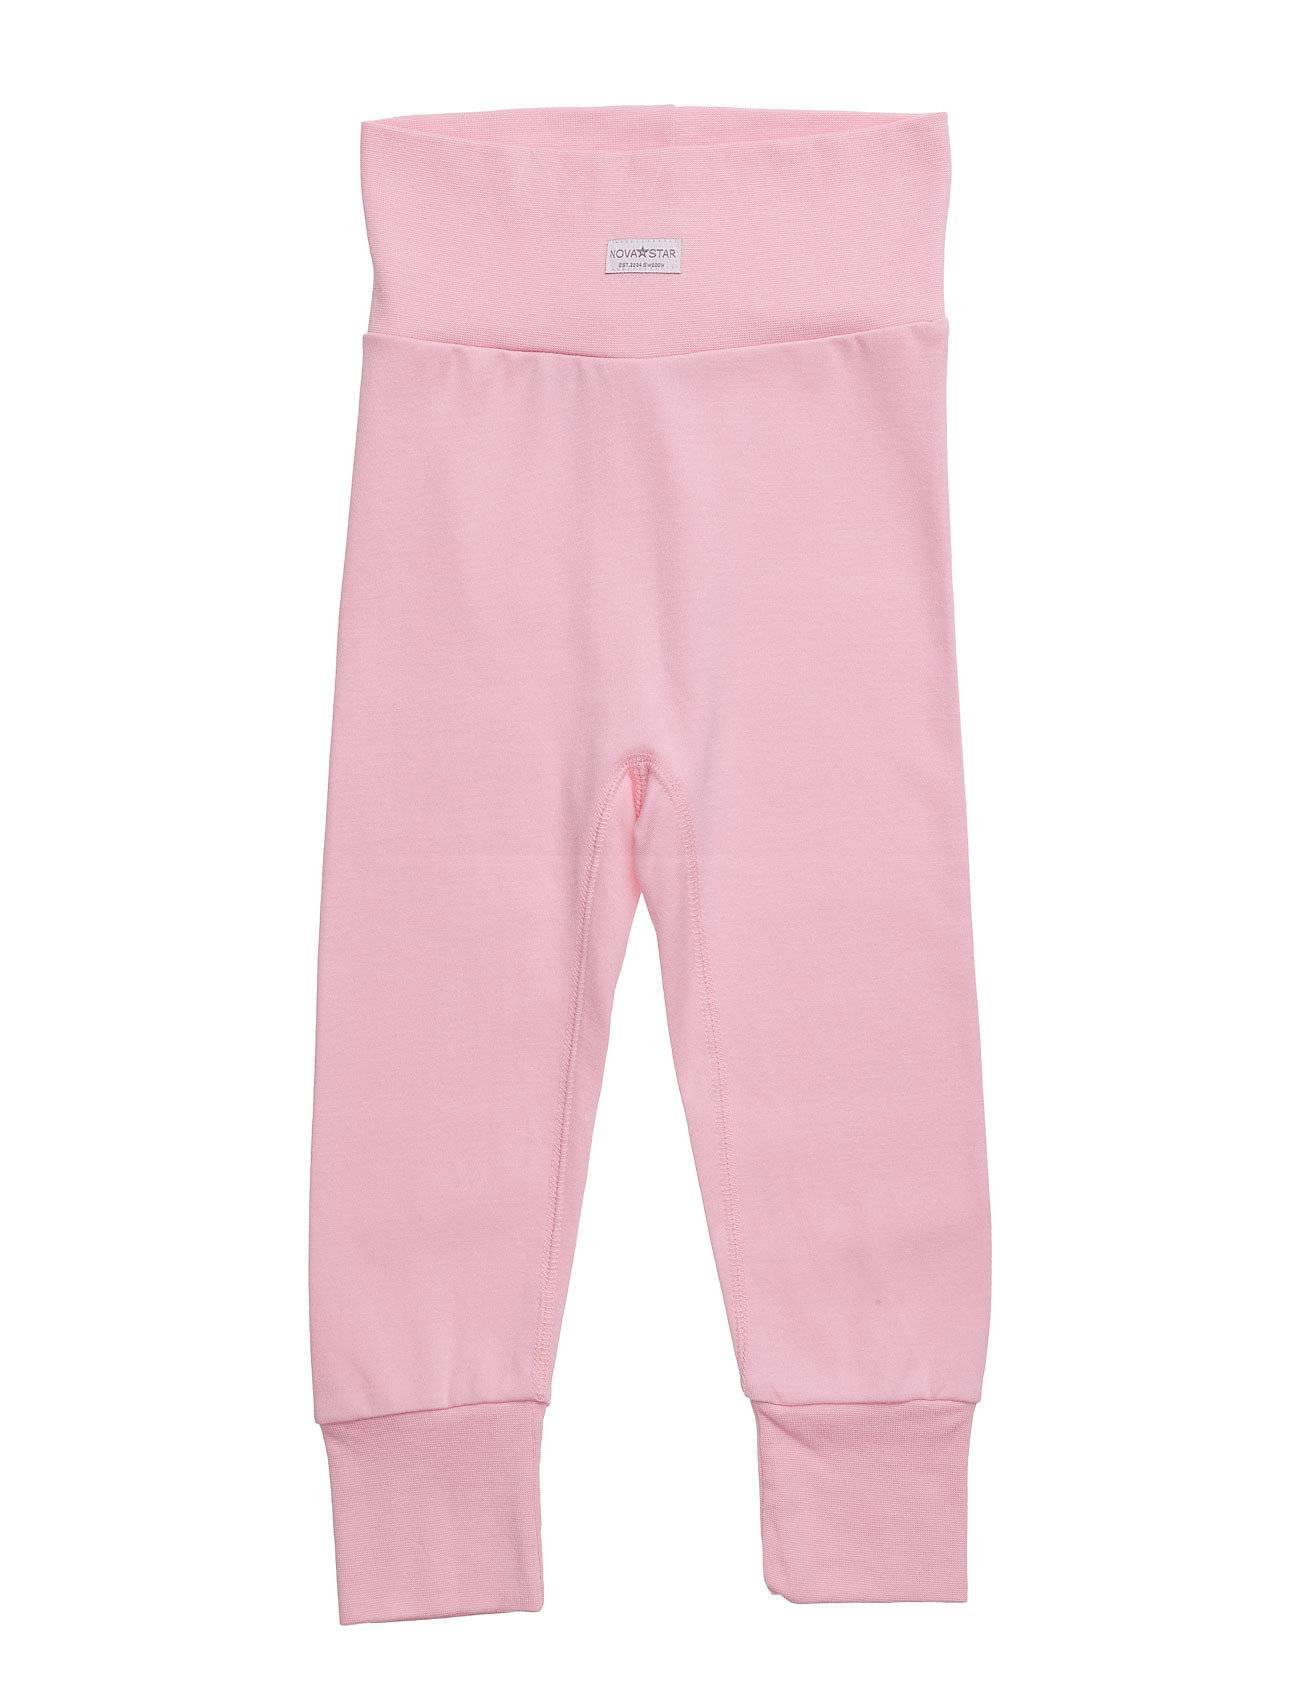 NOVA STAR Pink Baby Trousers